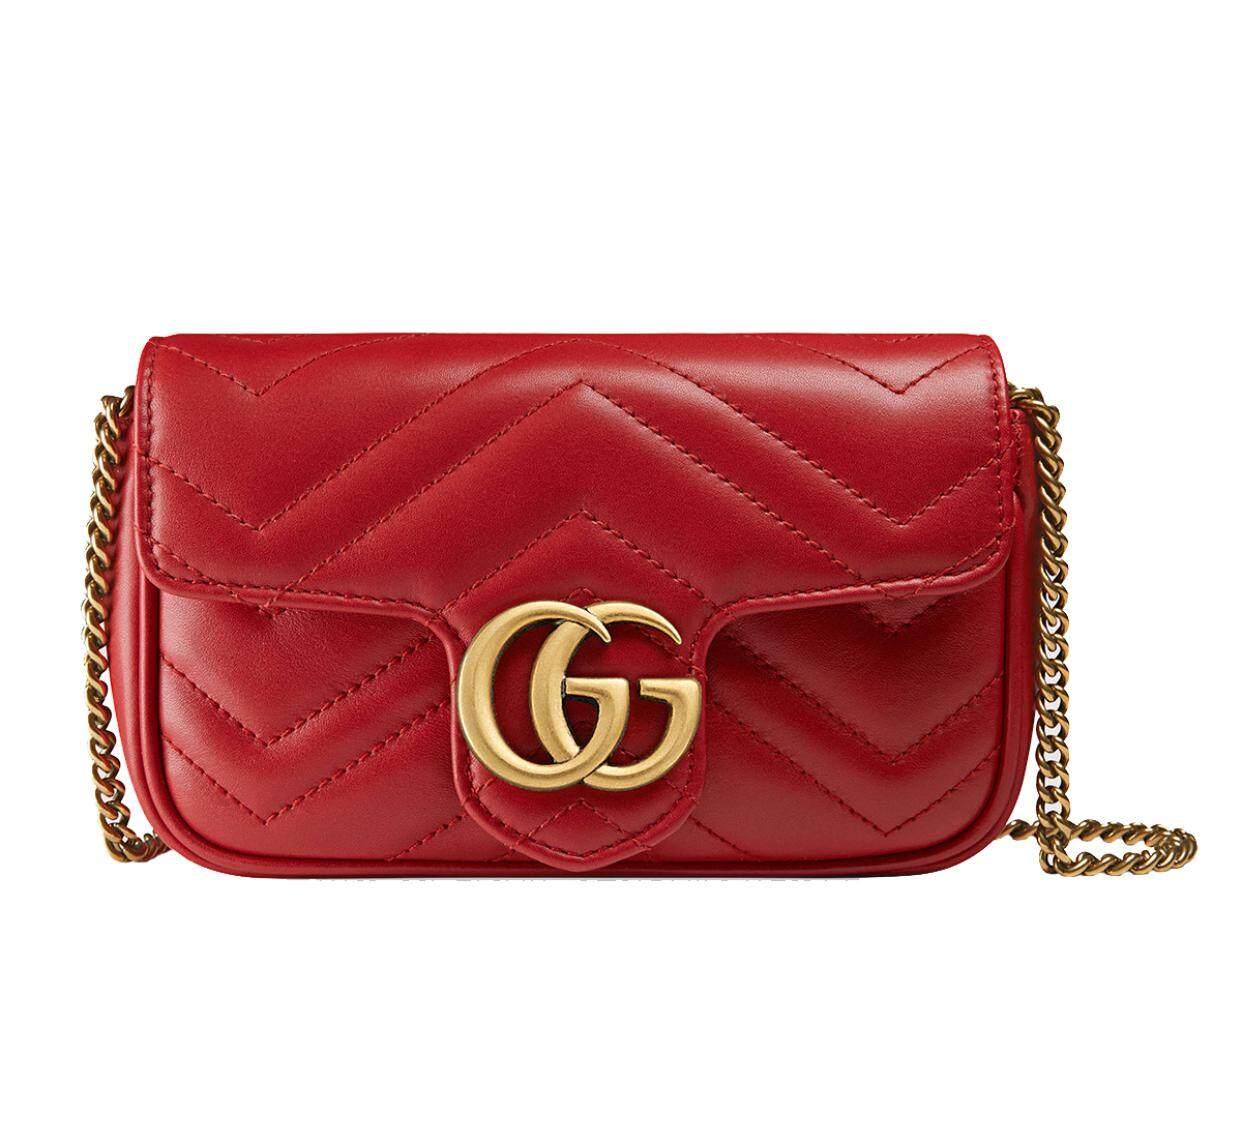 Gucci Women Bags Price In Malaysia Best Gucci Women Bags Lazada